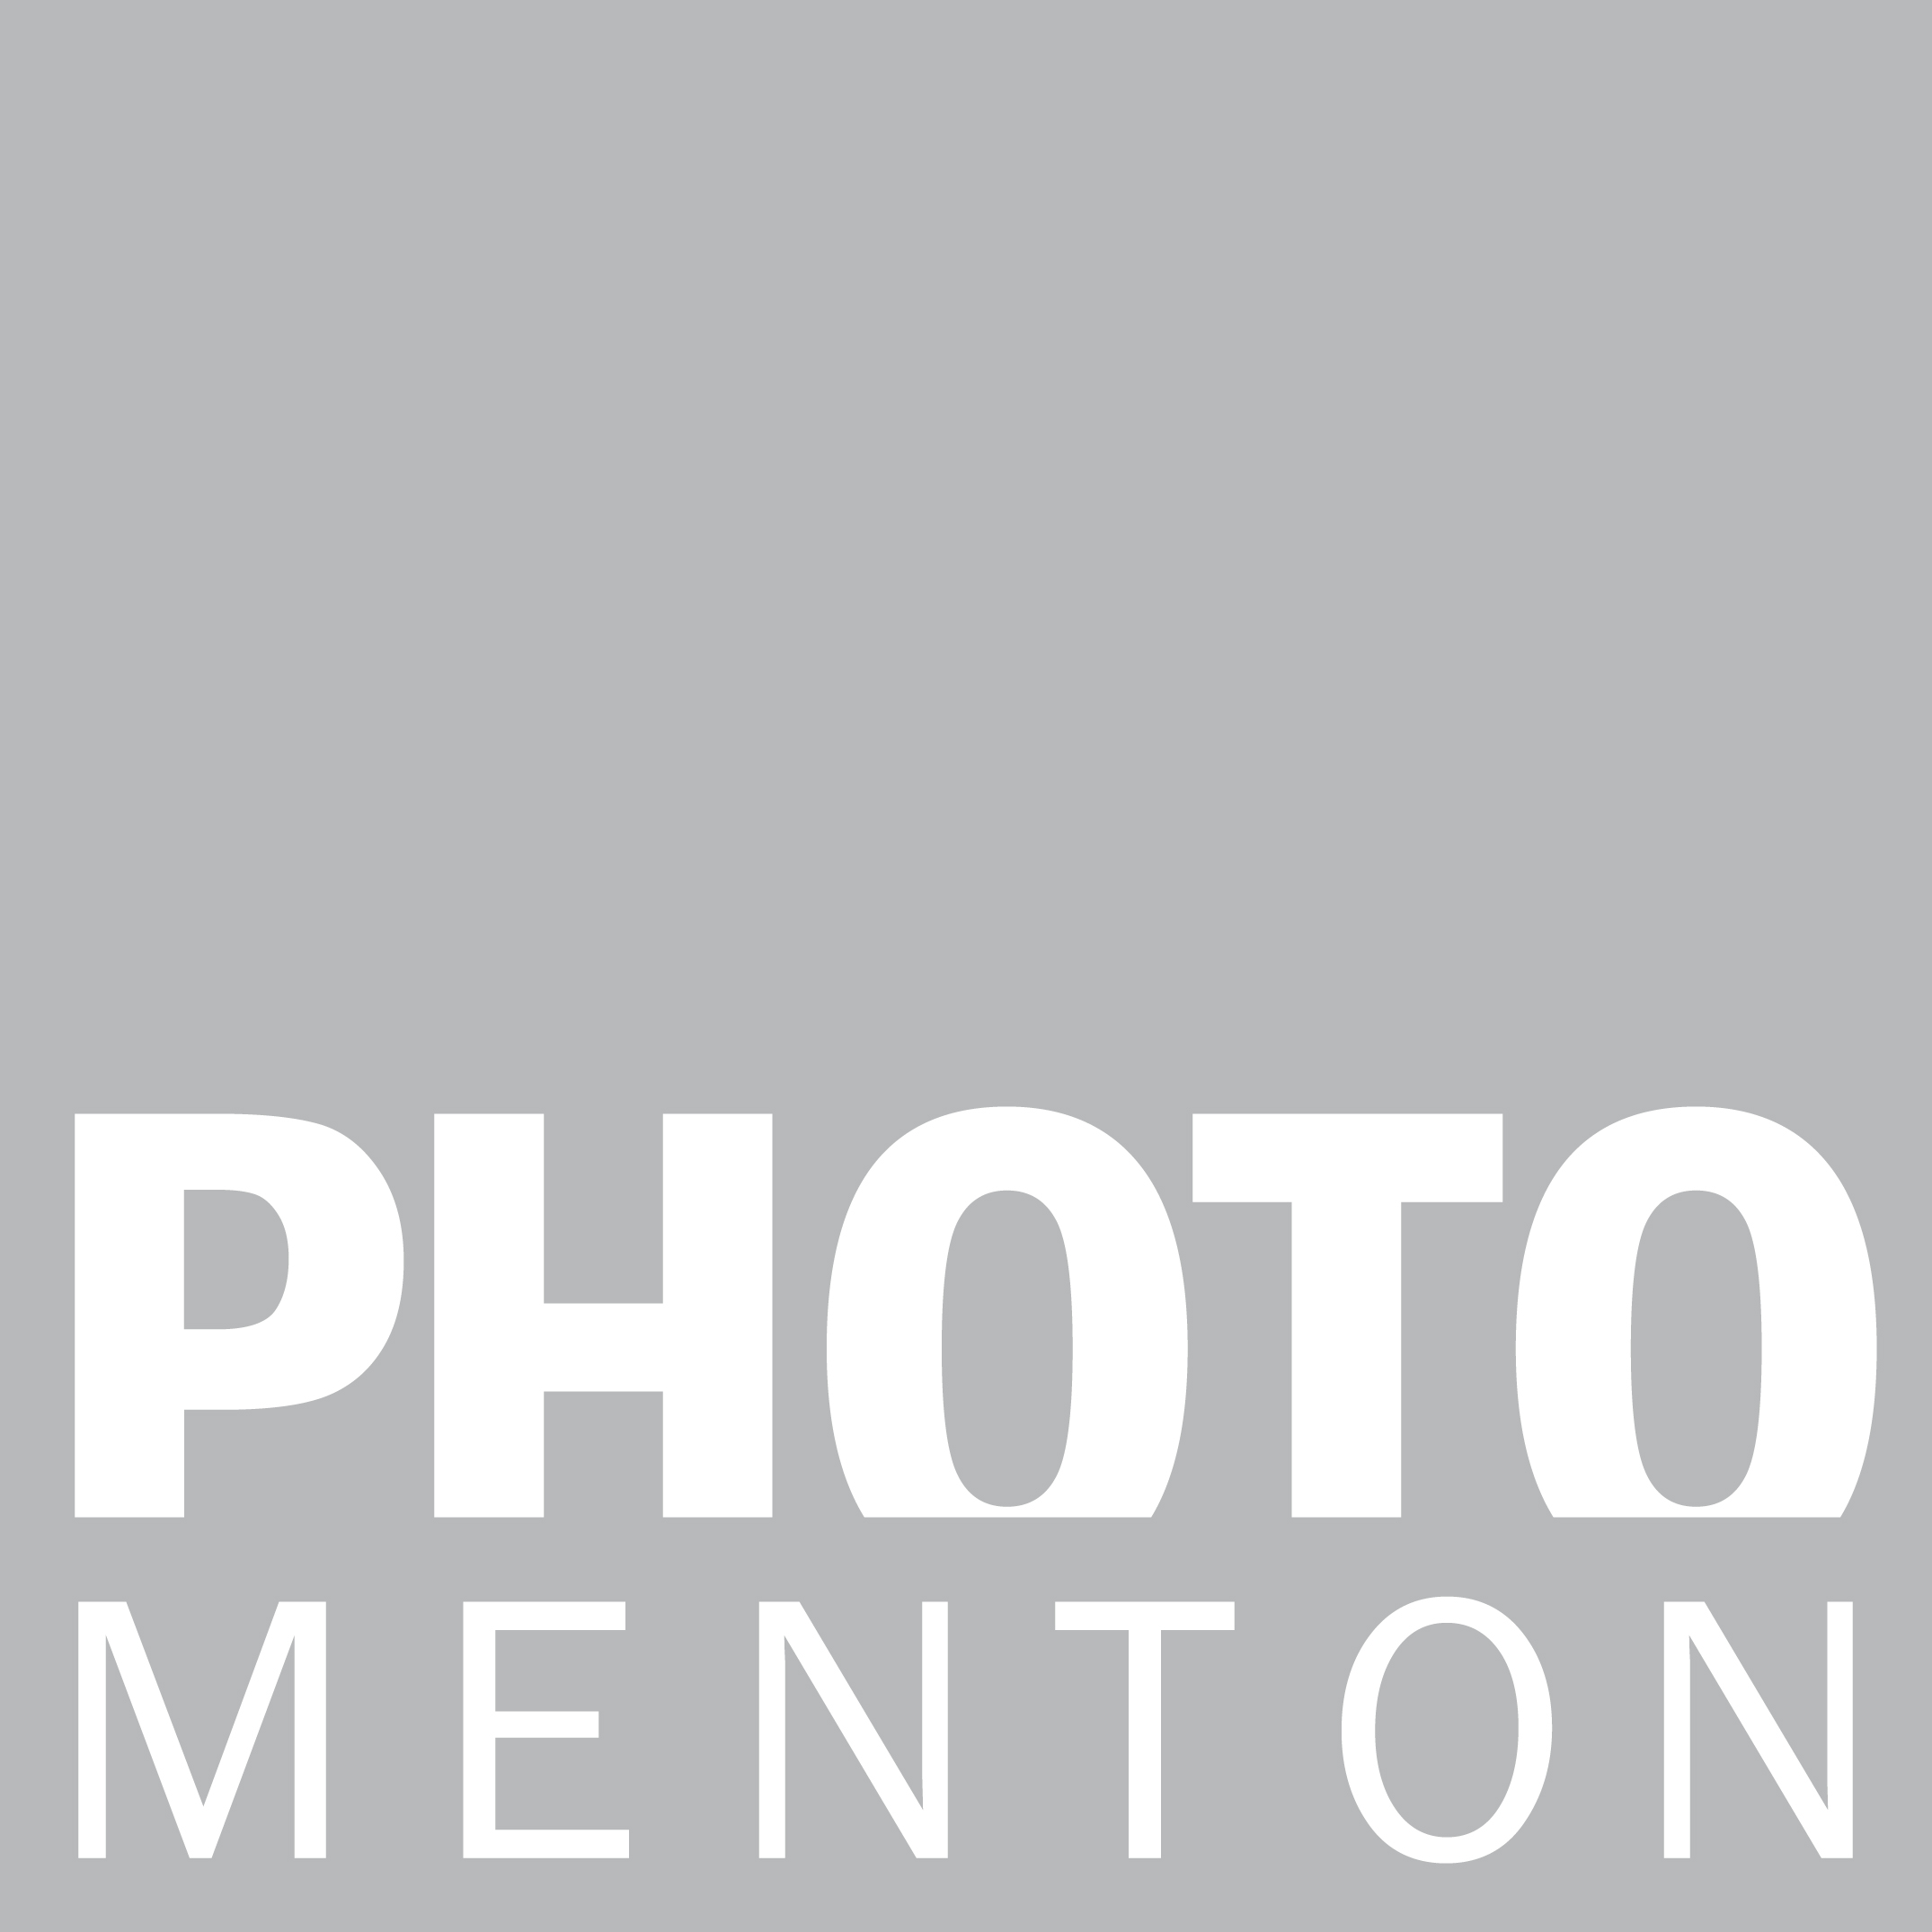 PhotoMenton